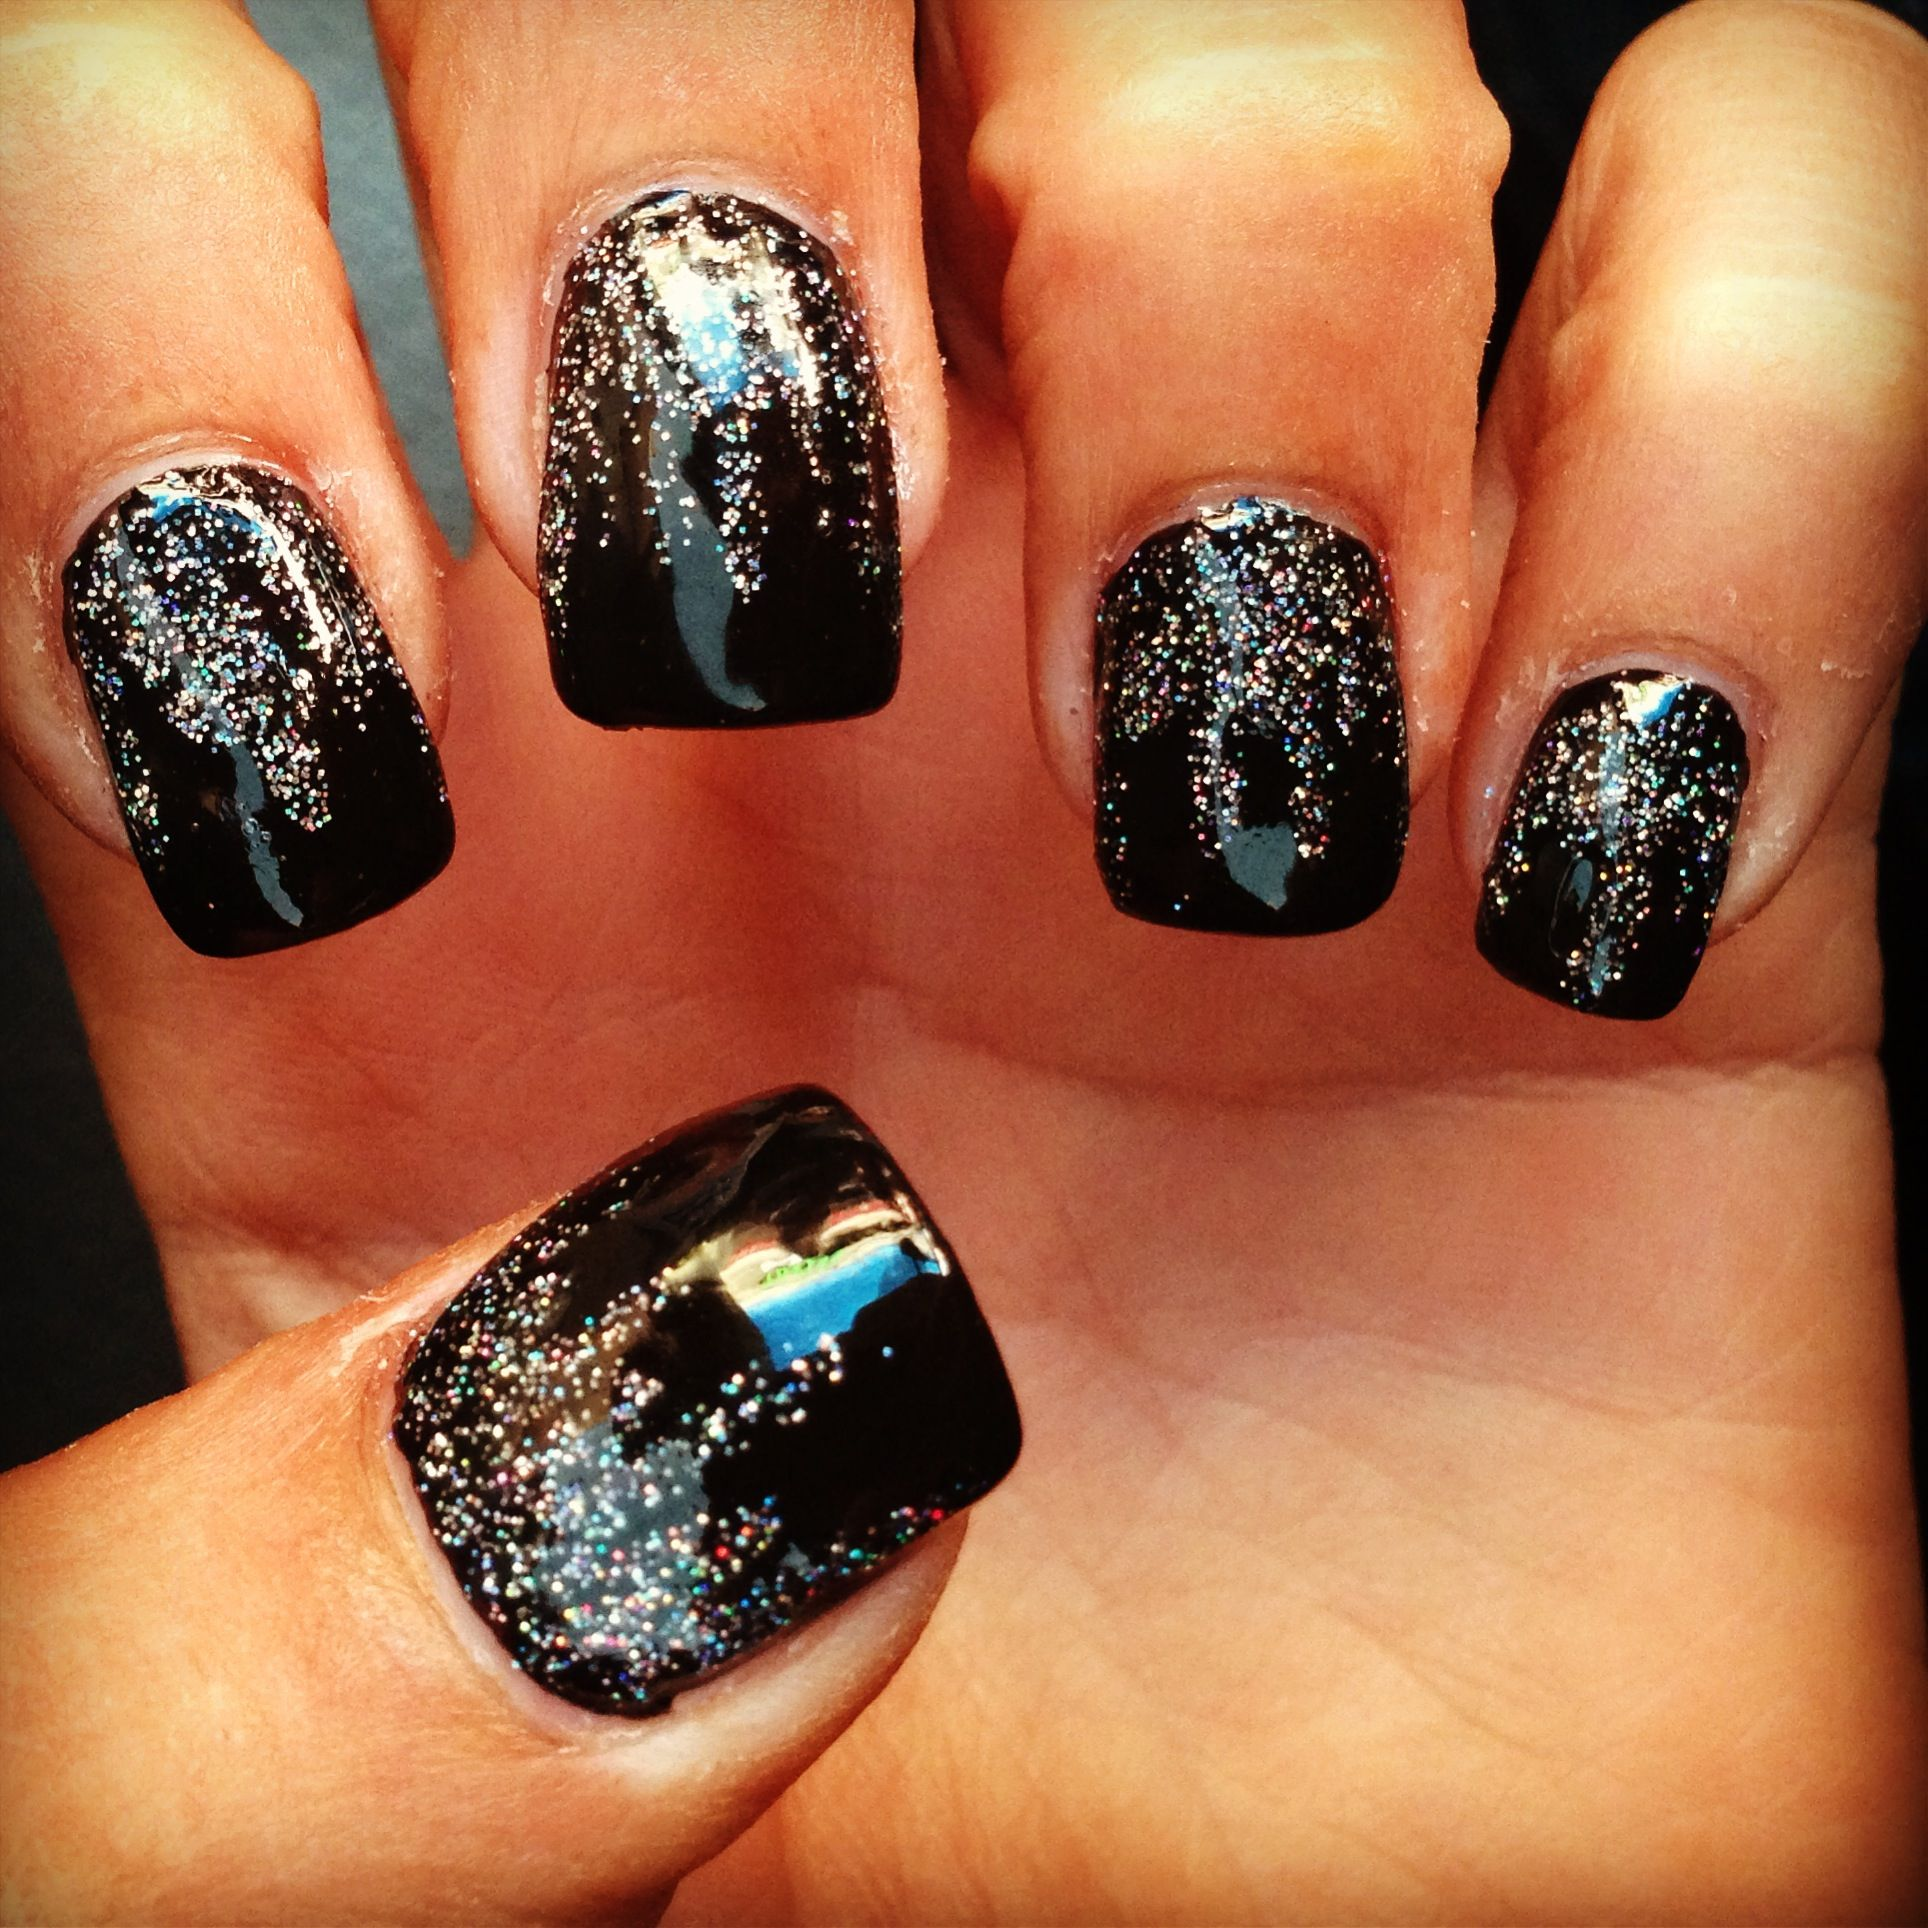 Cool & creative nails go with any outfit! #Nails #Beauty #Style ...